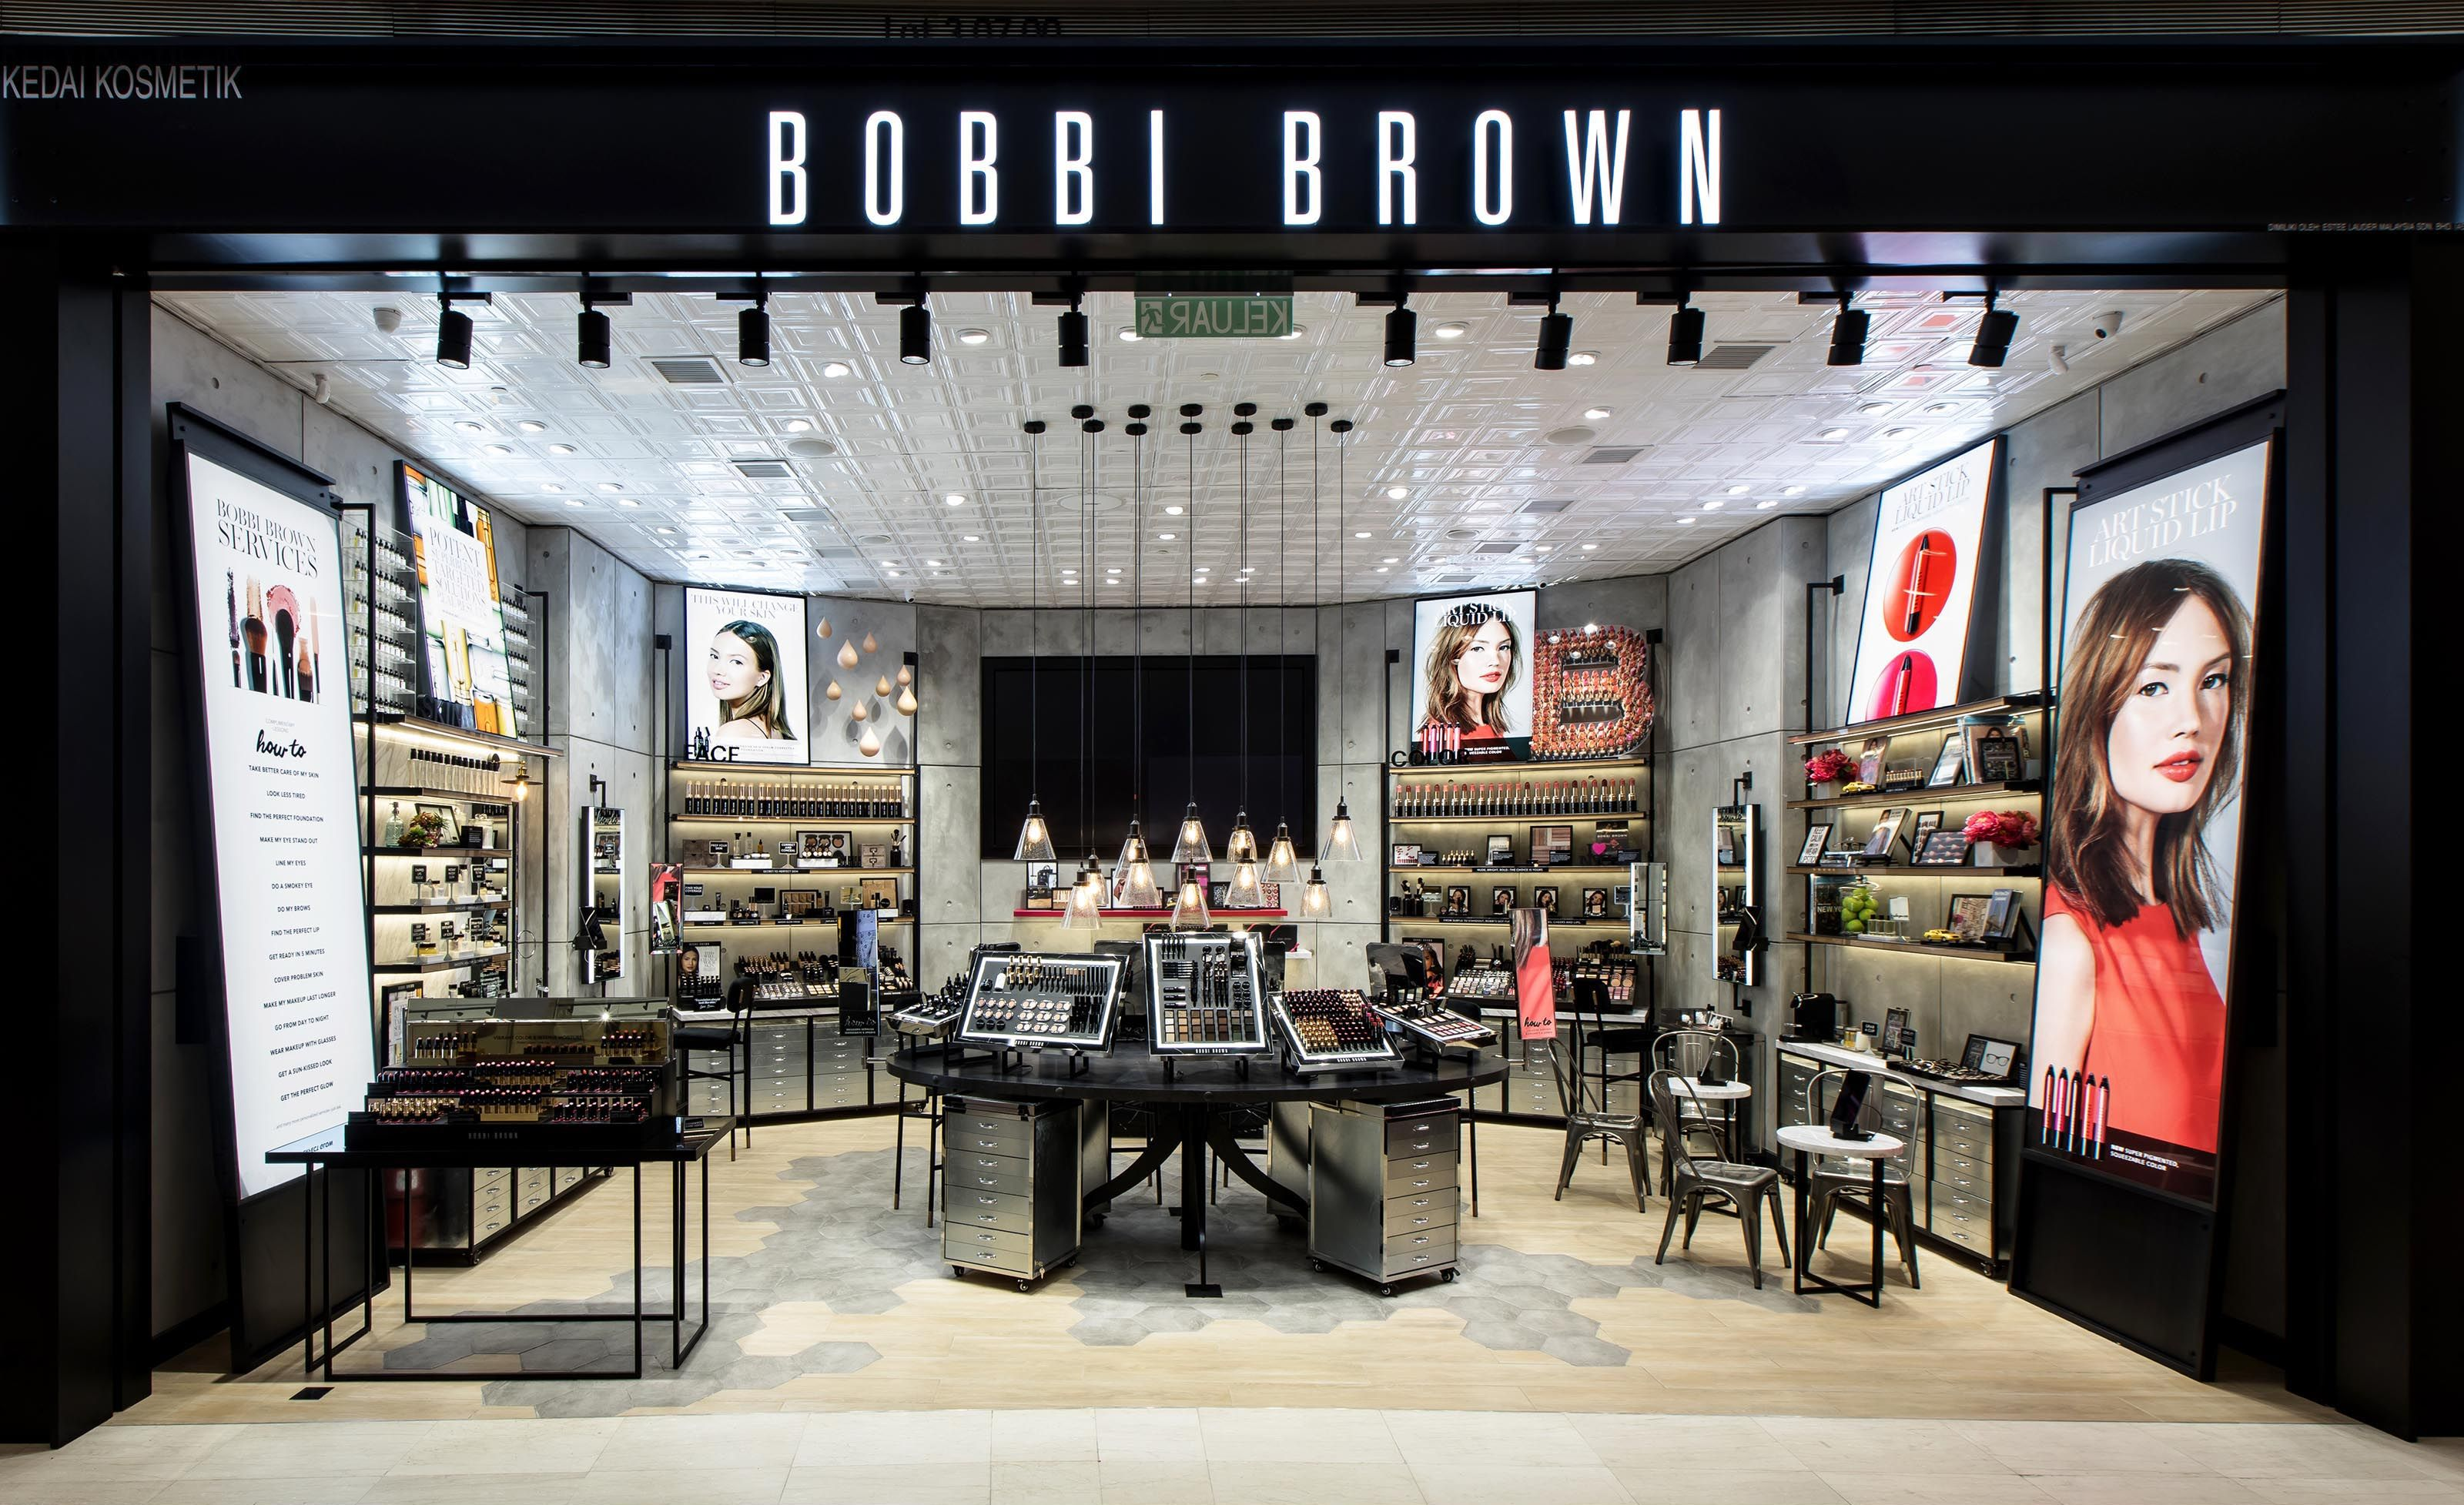 Bobbi Brown Pavilion Store Diva In Me Bobbi Brown Makeup Store Cosmetic Store